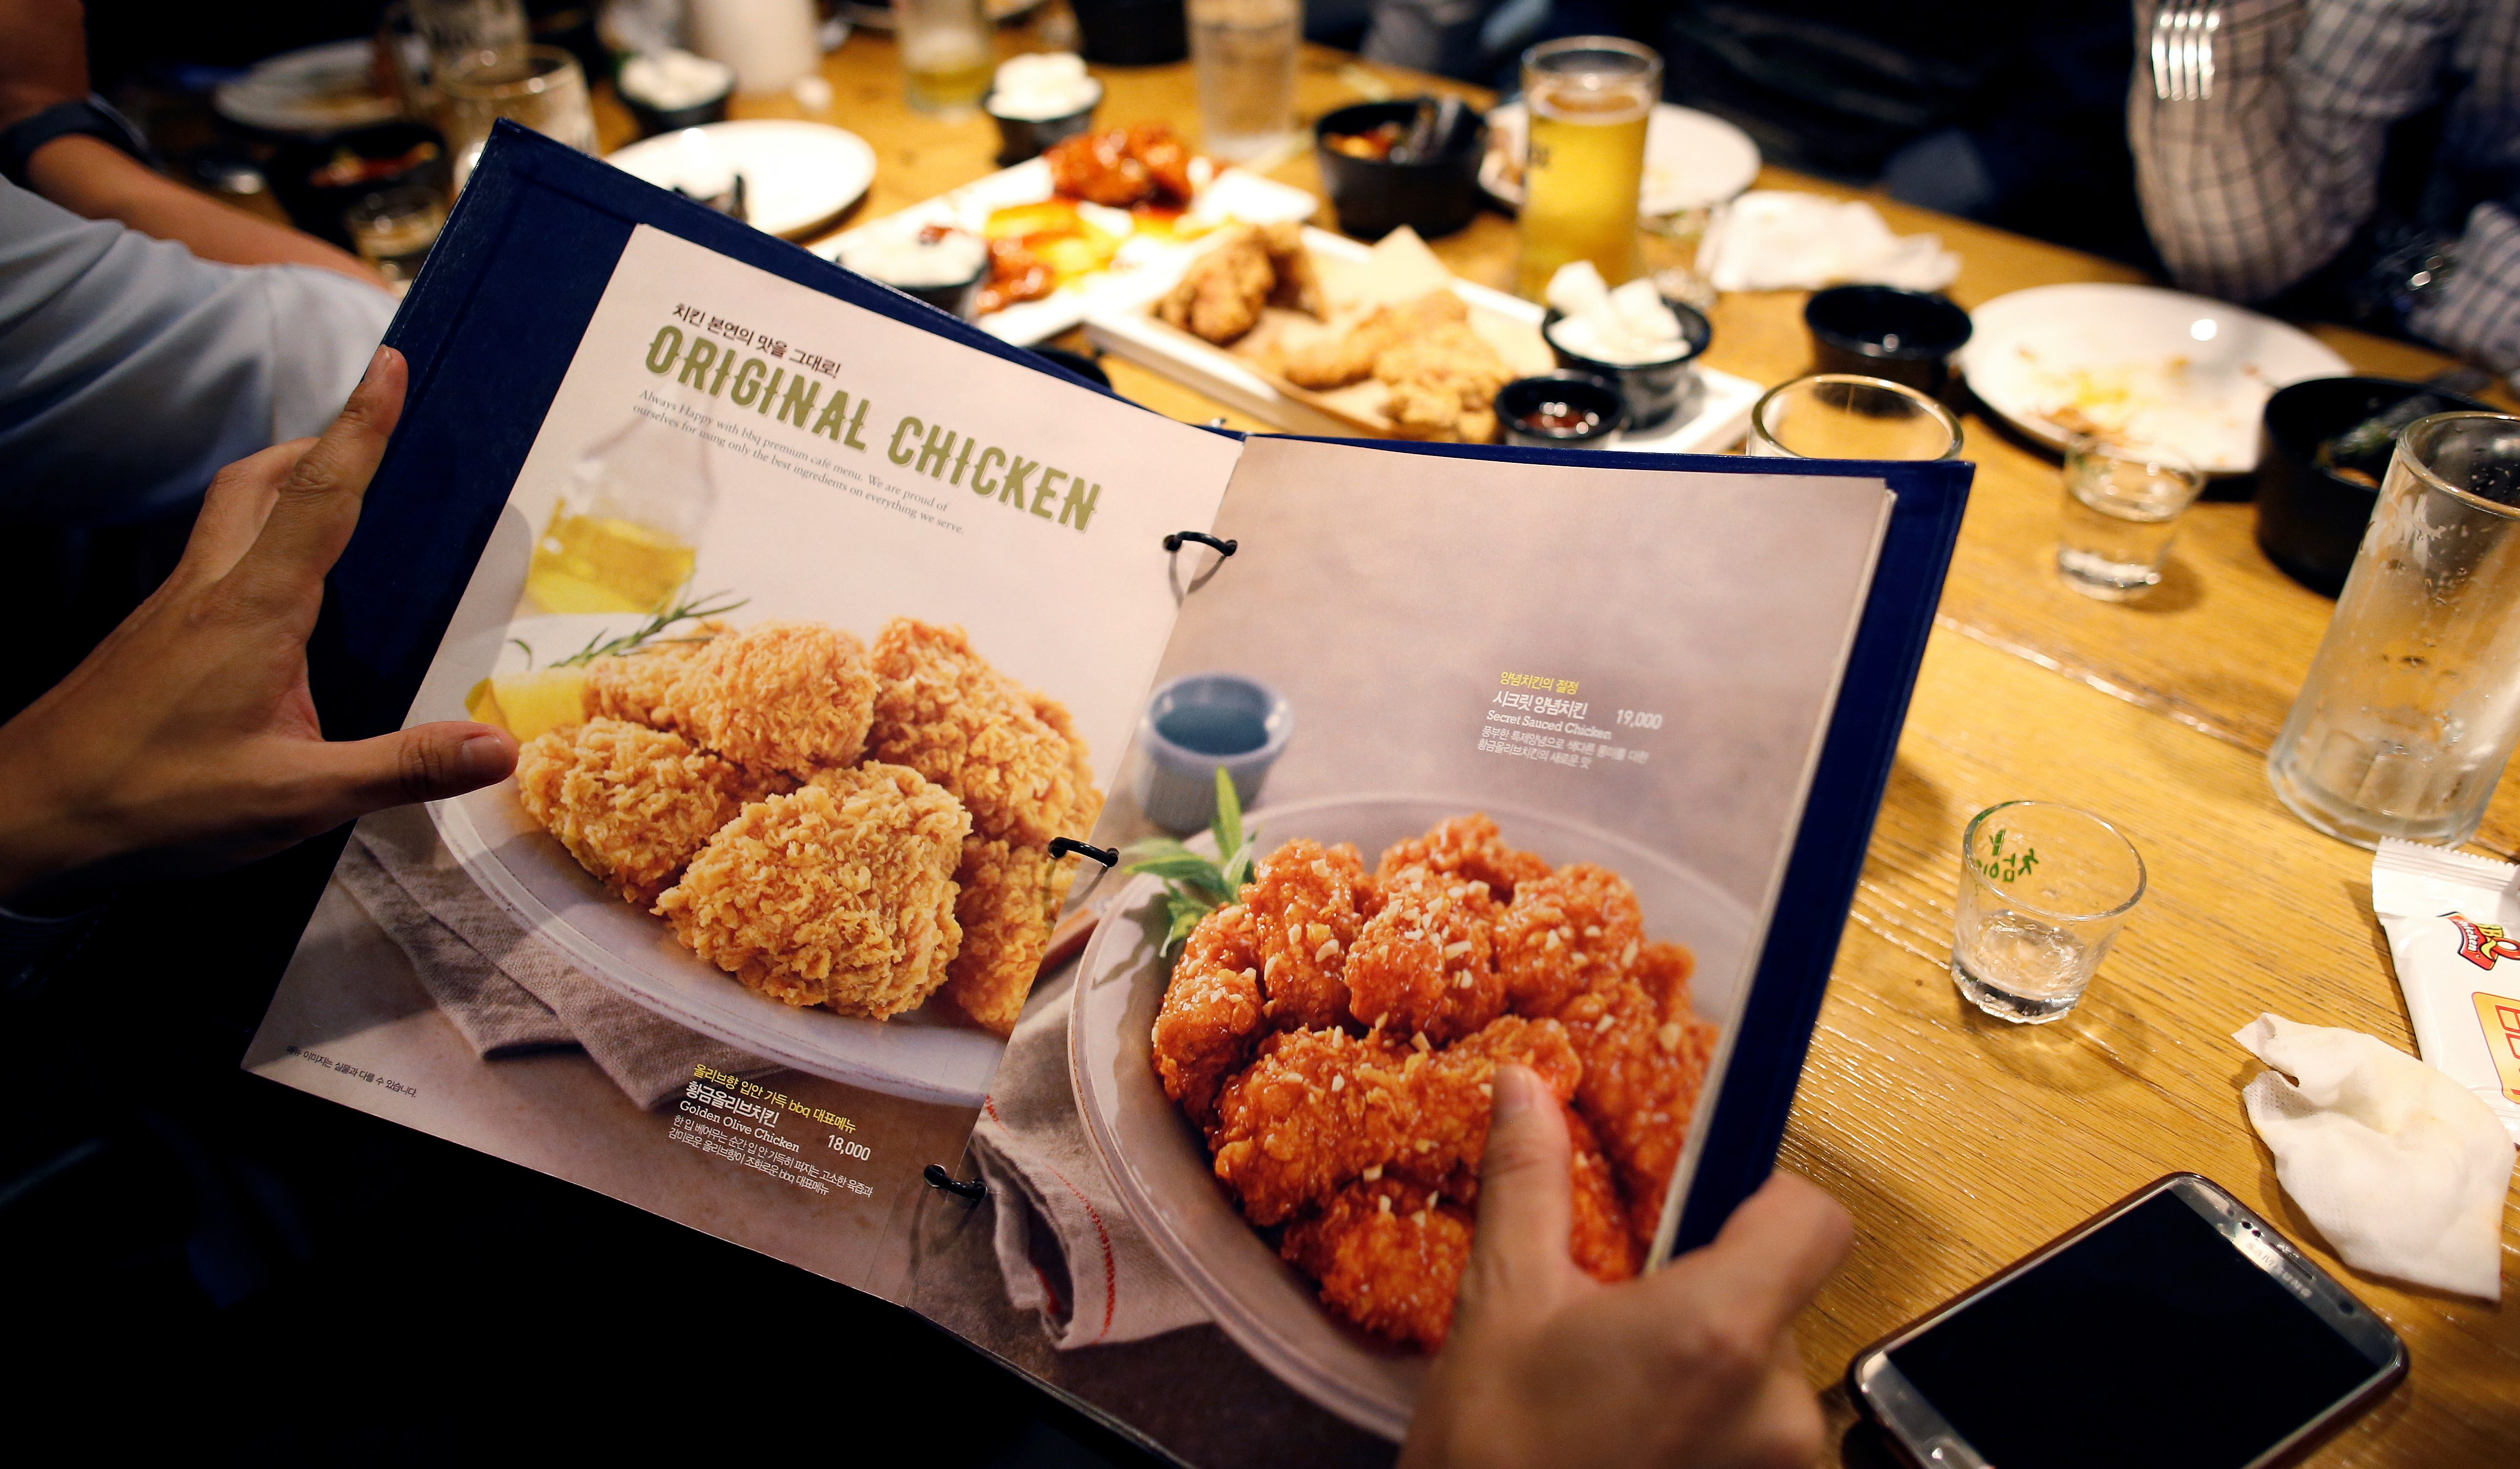 A man looks at a menu for fried chicken at a pub in Seoul, South Korea, October 11, 2016.